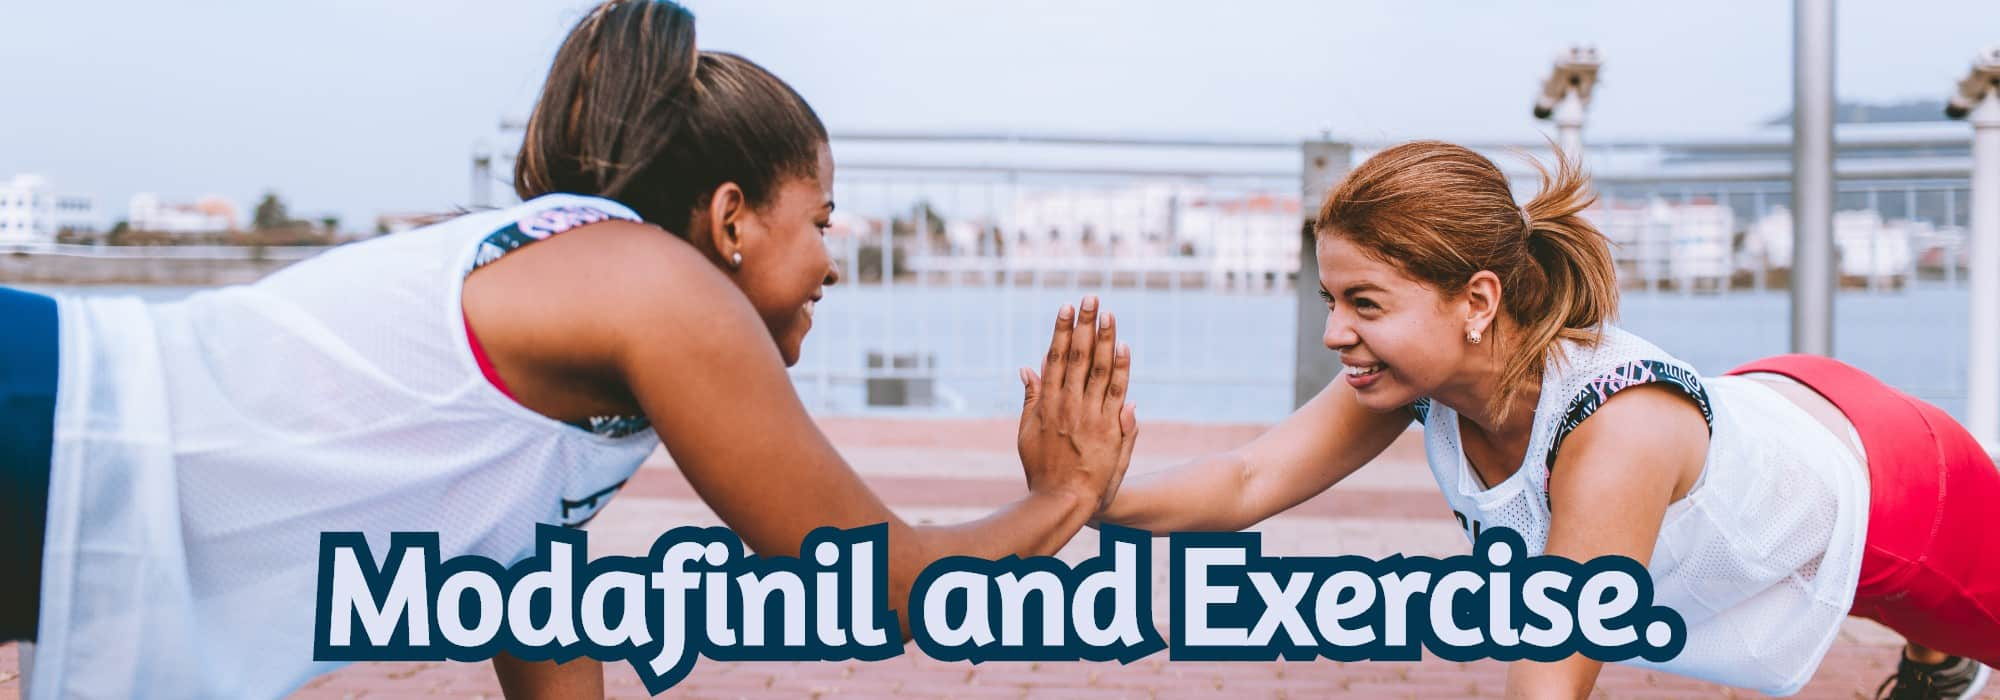 Modafinil and Exercise.